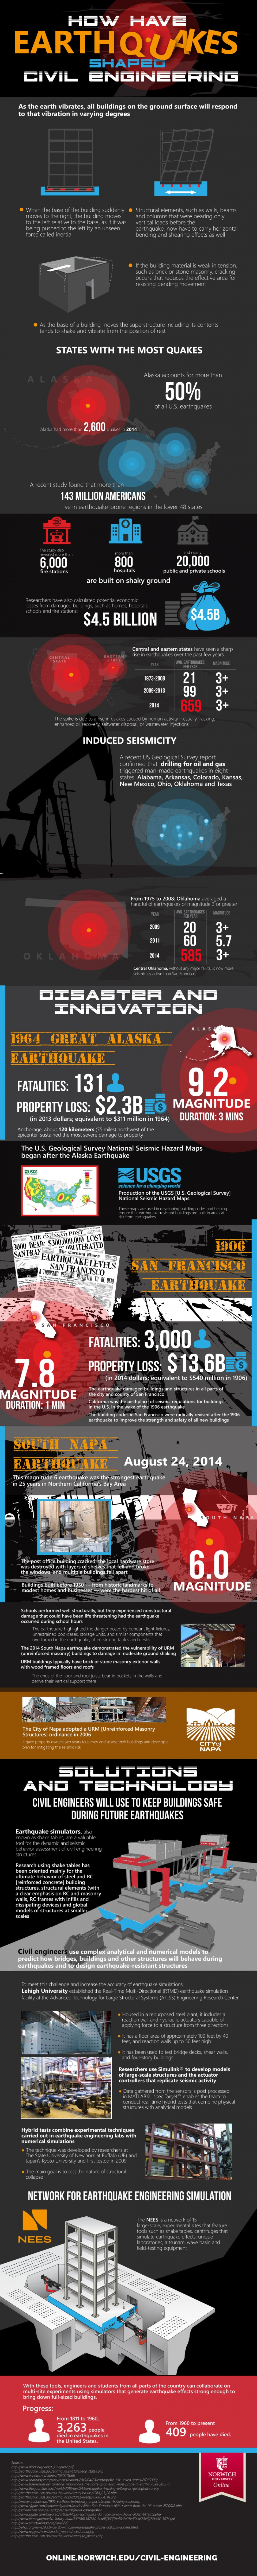 earthquakes infographic image